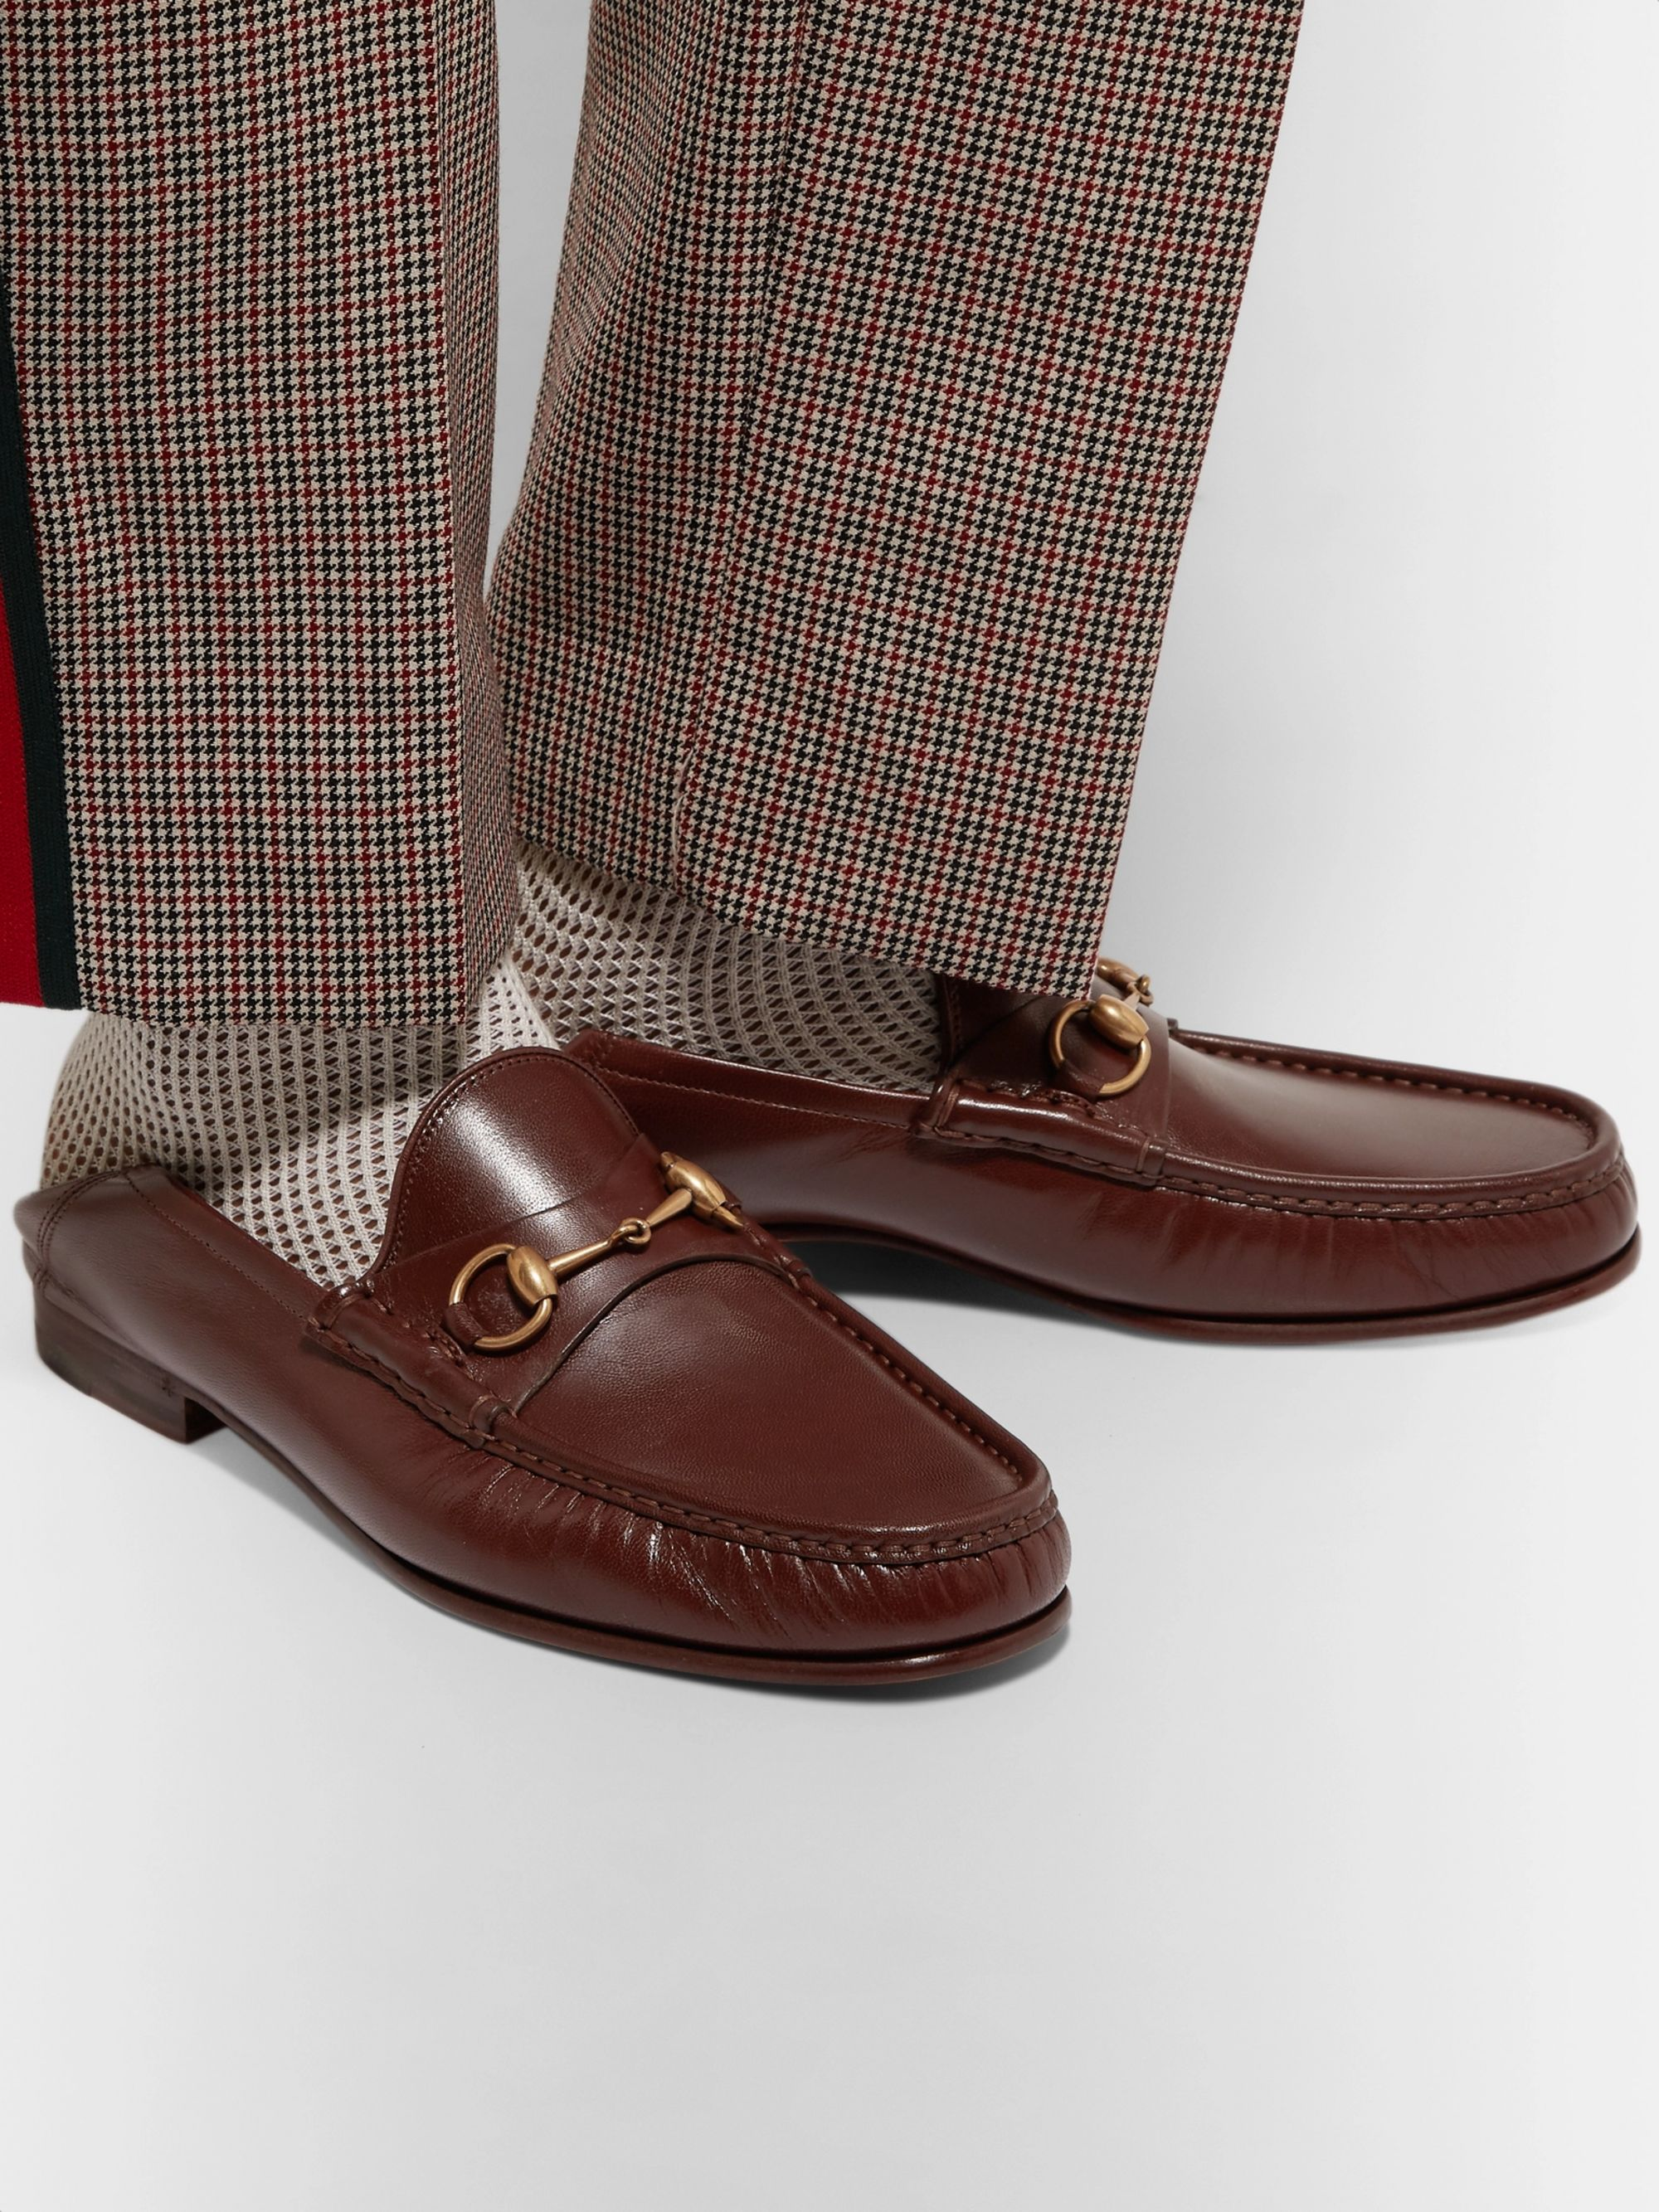 Gucci Easy Roos Horsebit Collapsible-Heel Leather Loafers